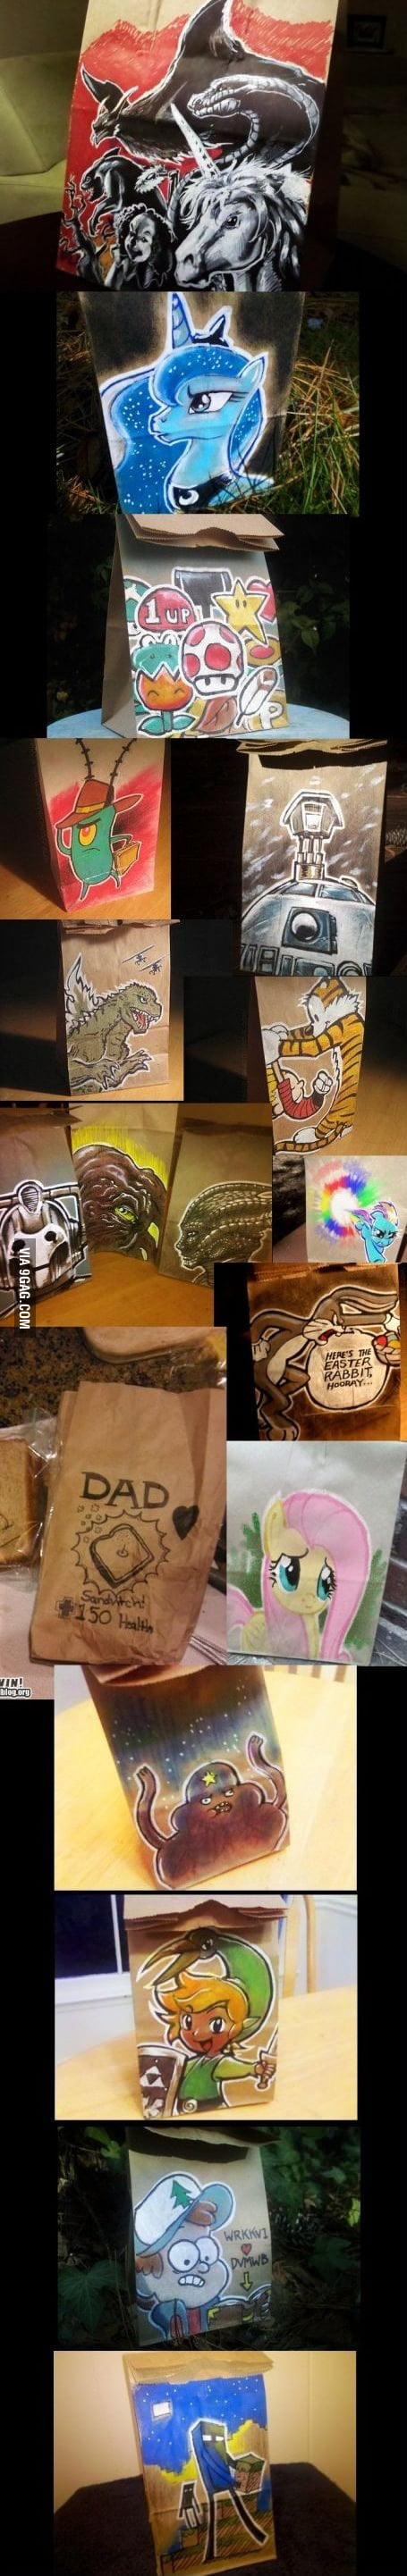 Epic lunch bags every day